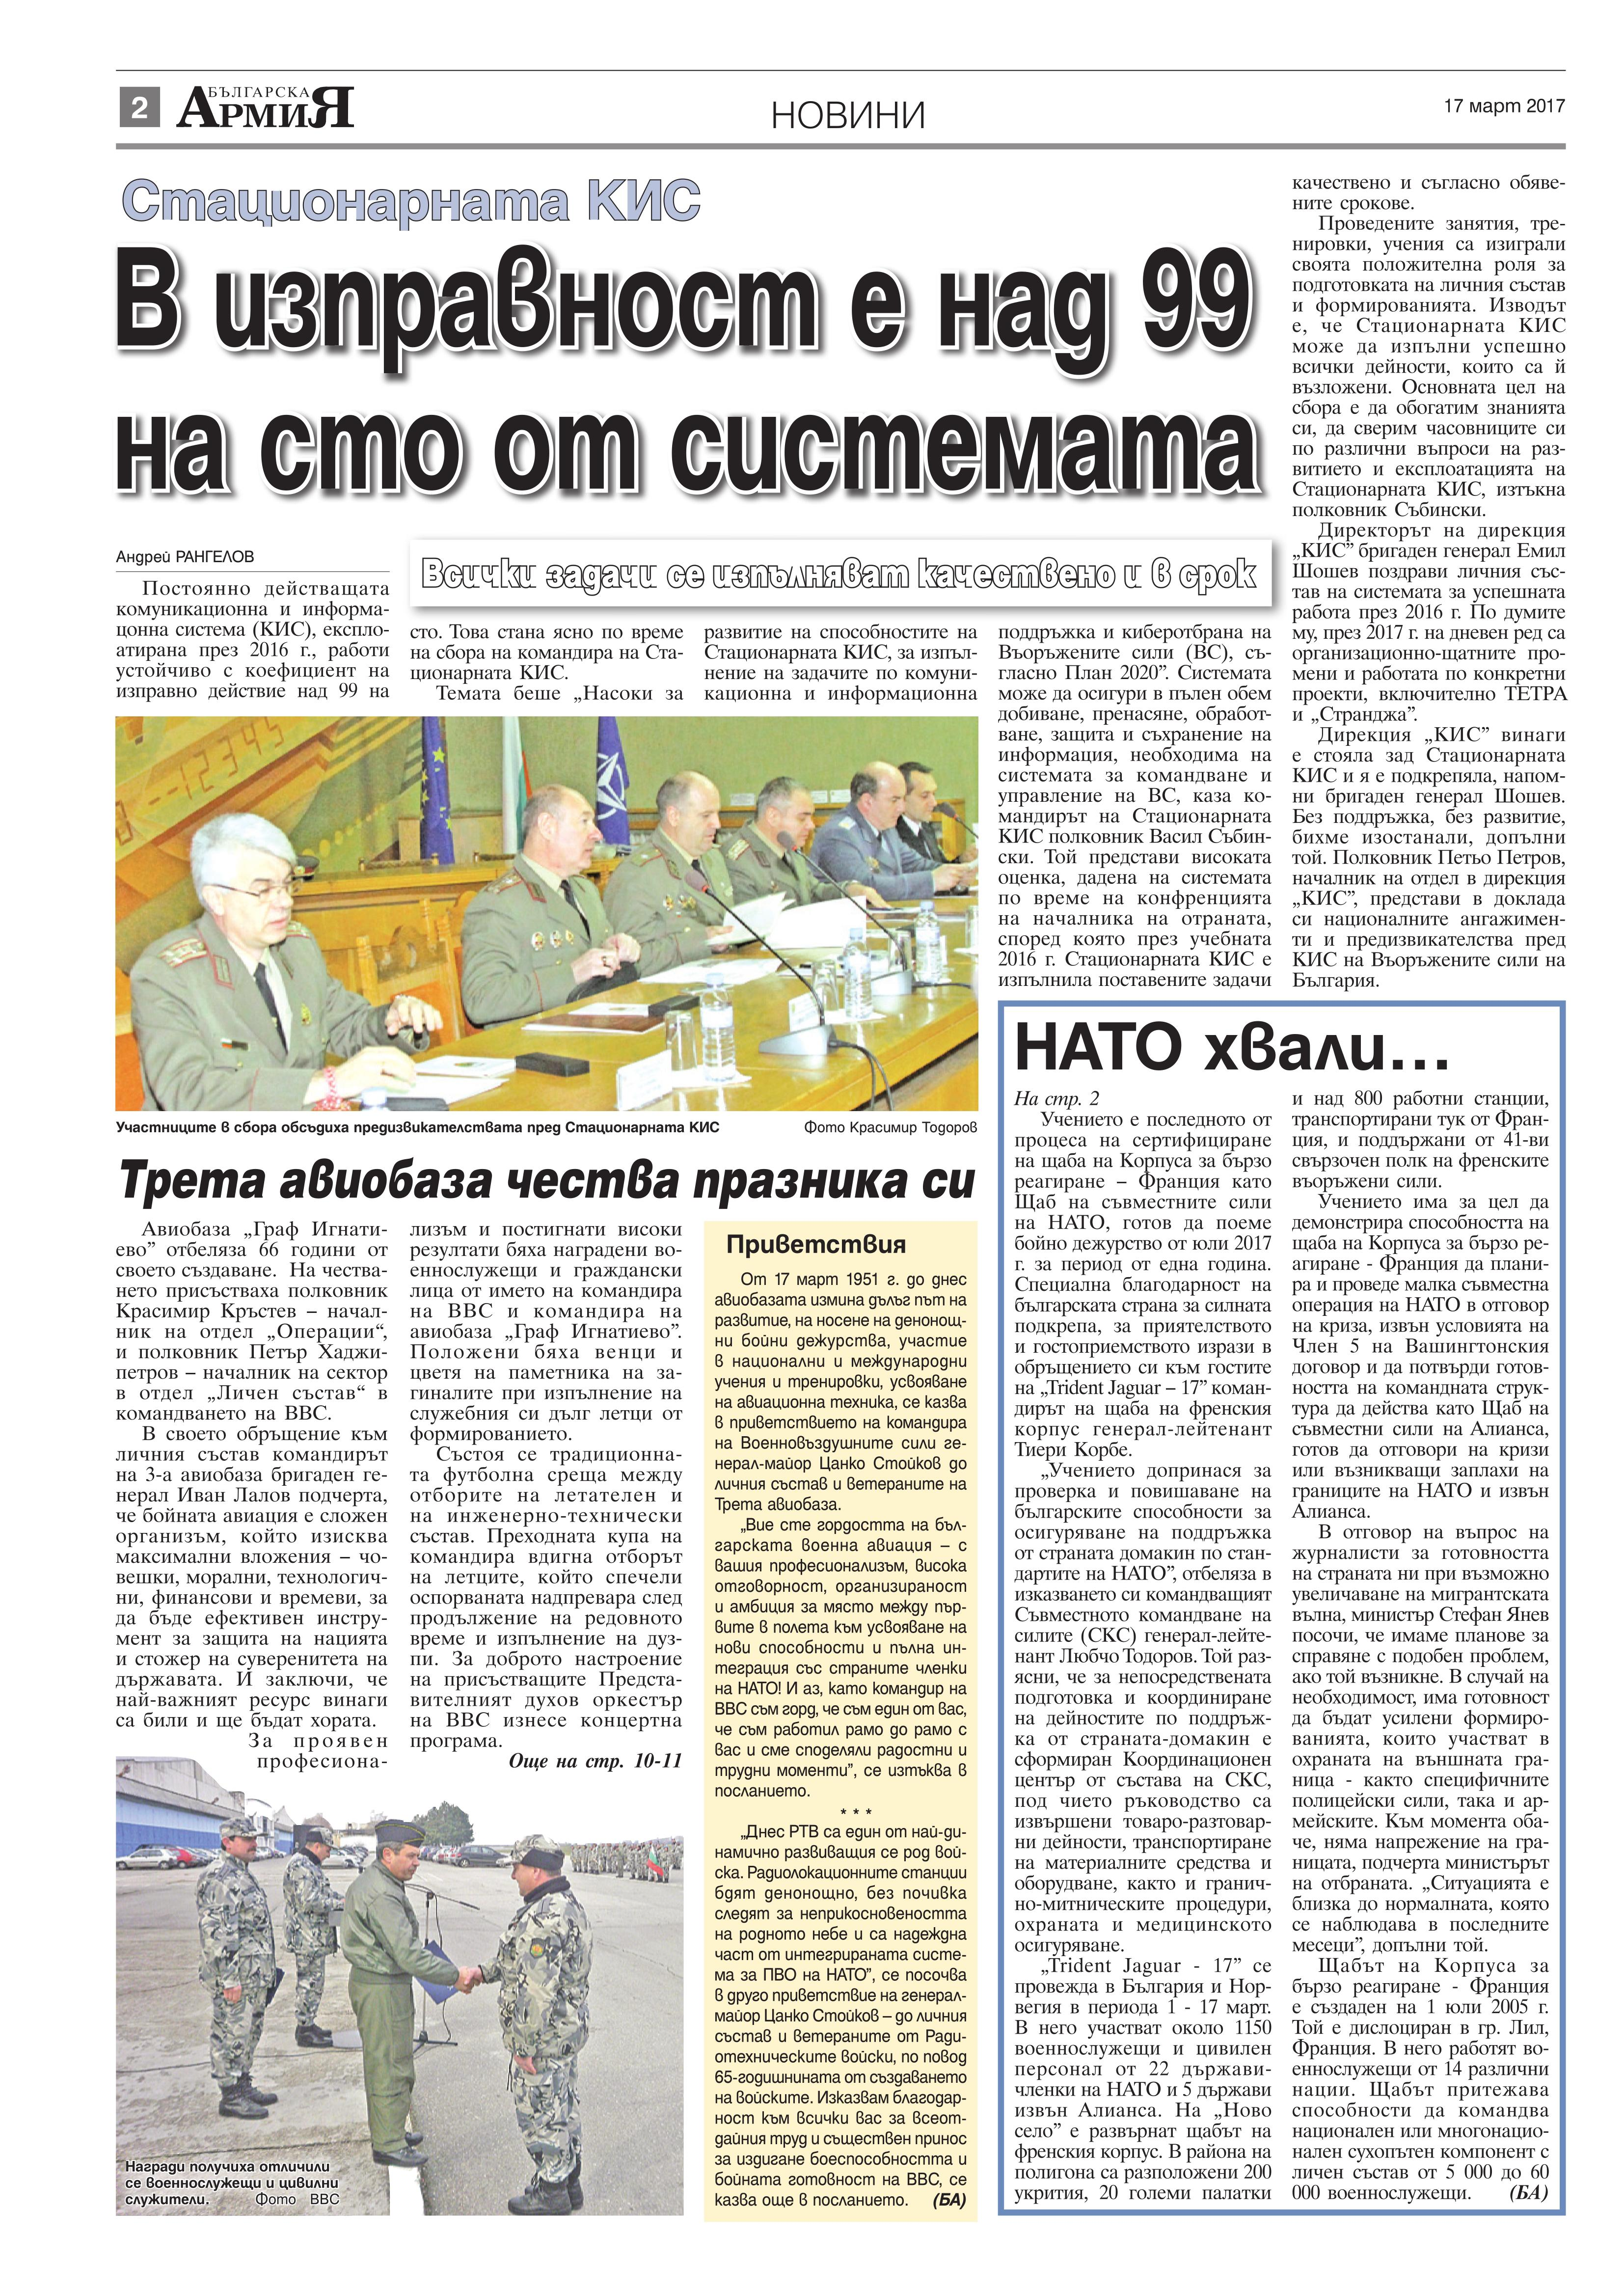 https://www.armymedia.bg/wp-content/uploads/2015/06/02.page1_-17.jpg